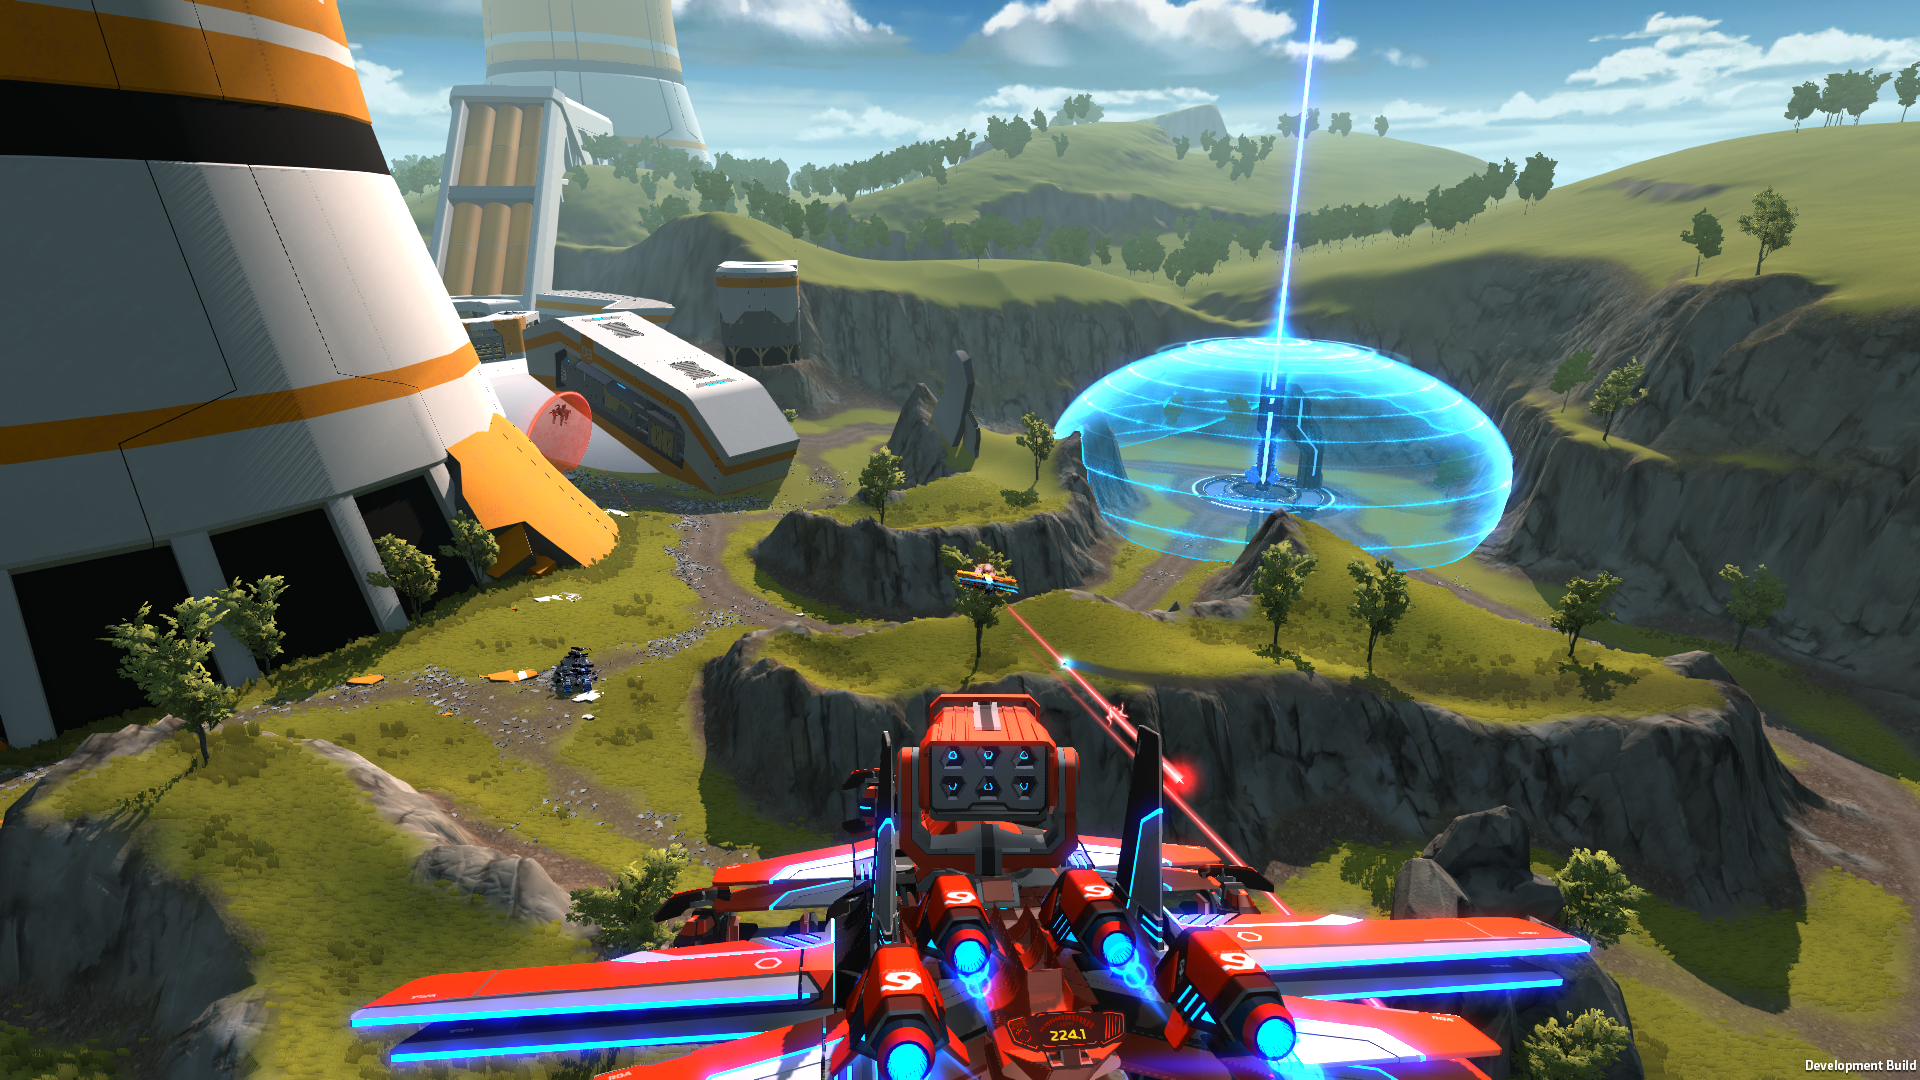 Robocraft Enters Beta With a New Update